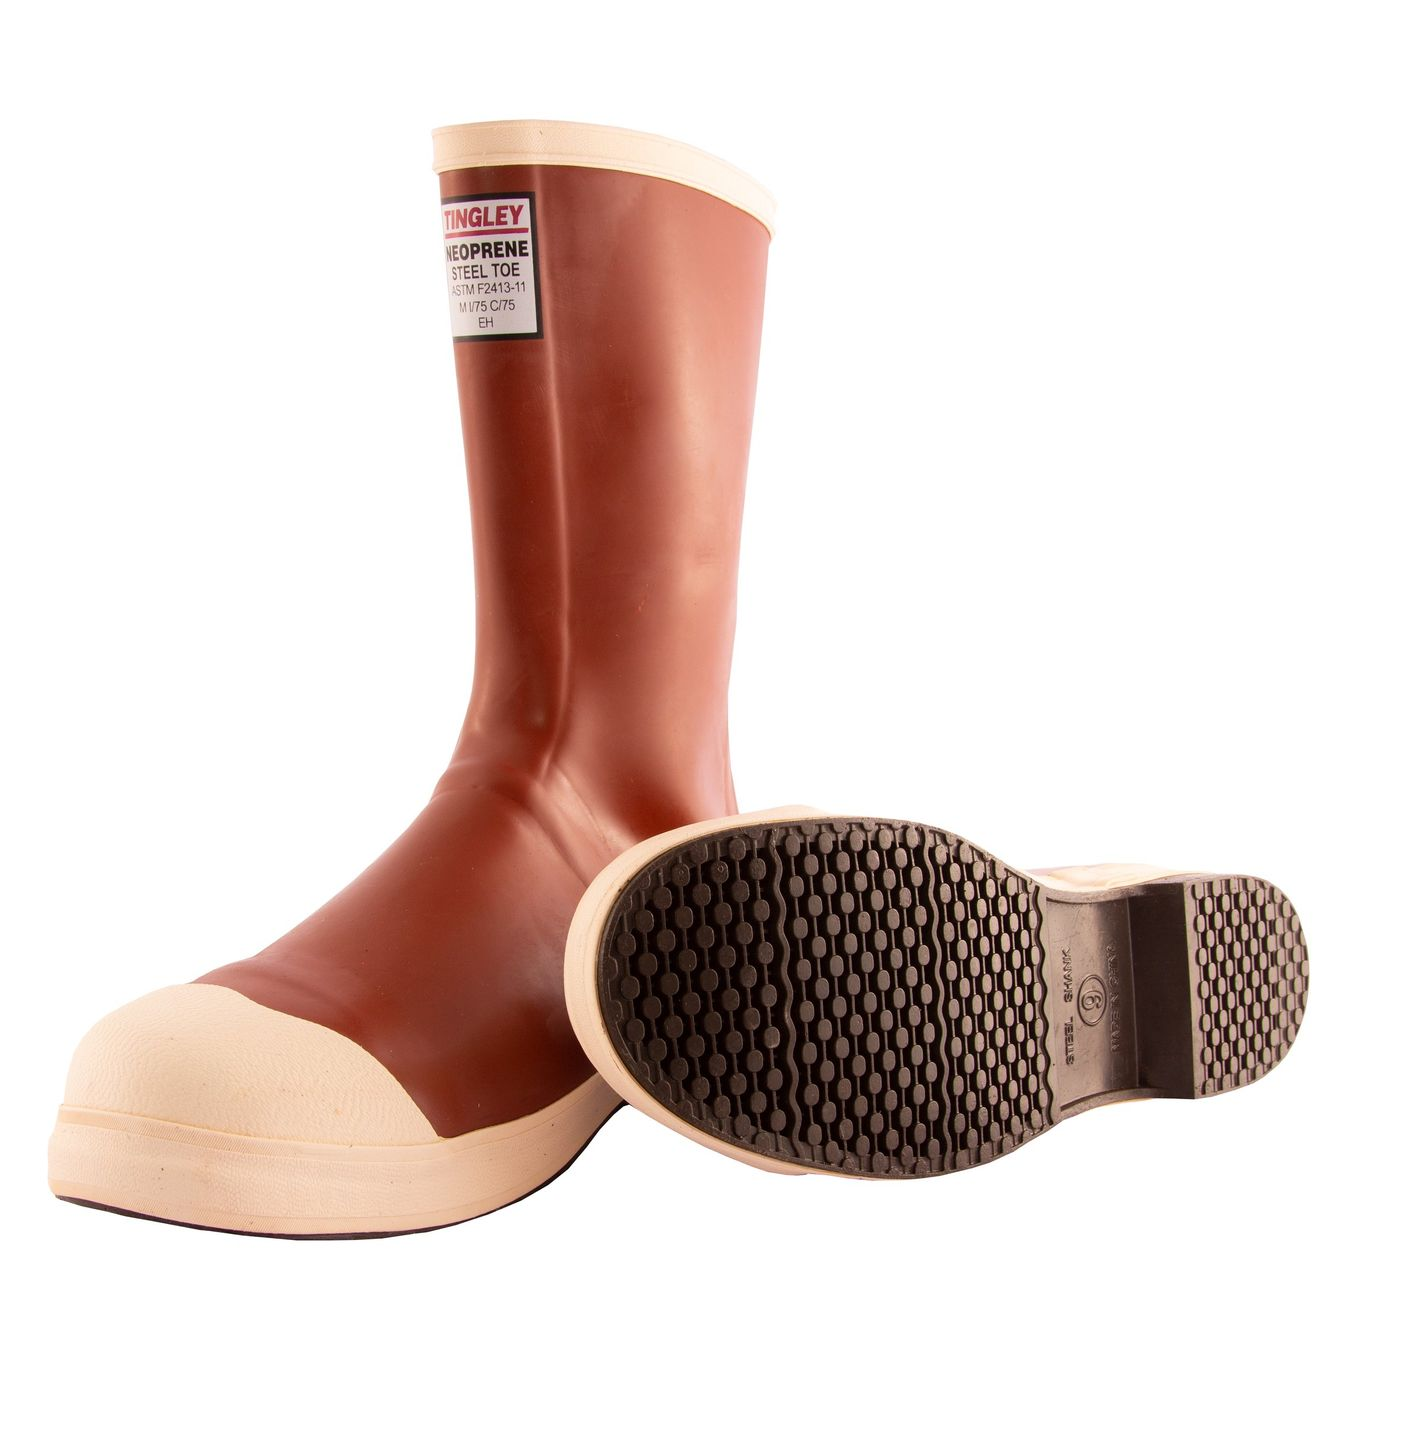 tingley-neoprene-steel-toe-boots-mb924b-premium-12-1-2-tall-safety-loc-outsoles-example.jpg